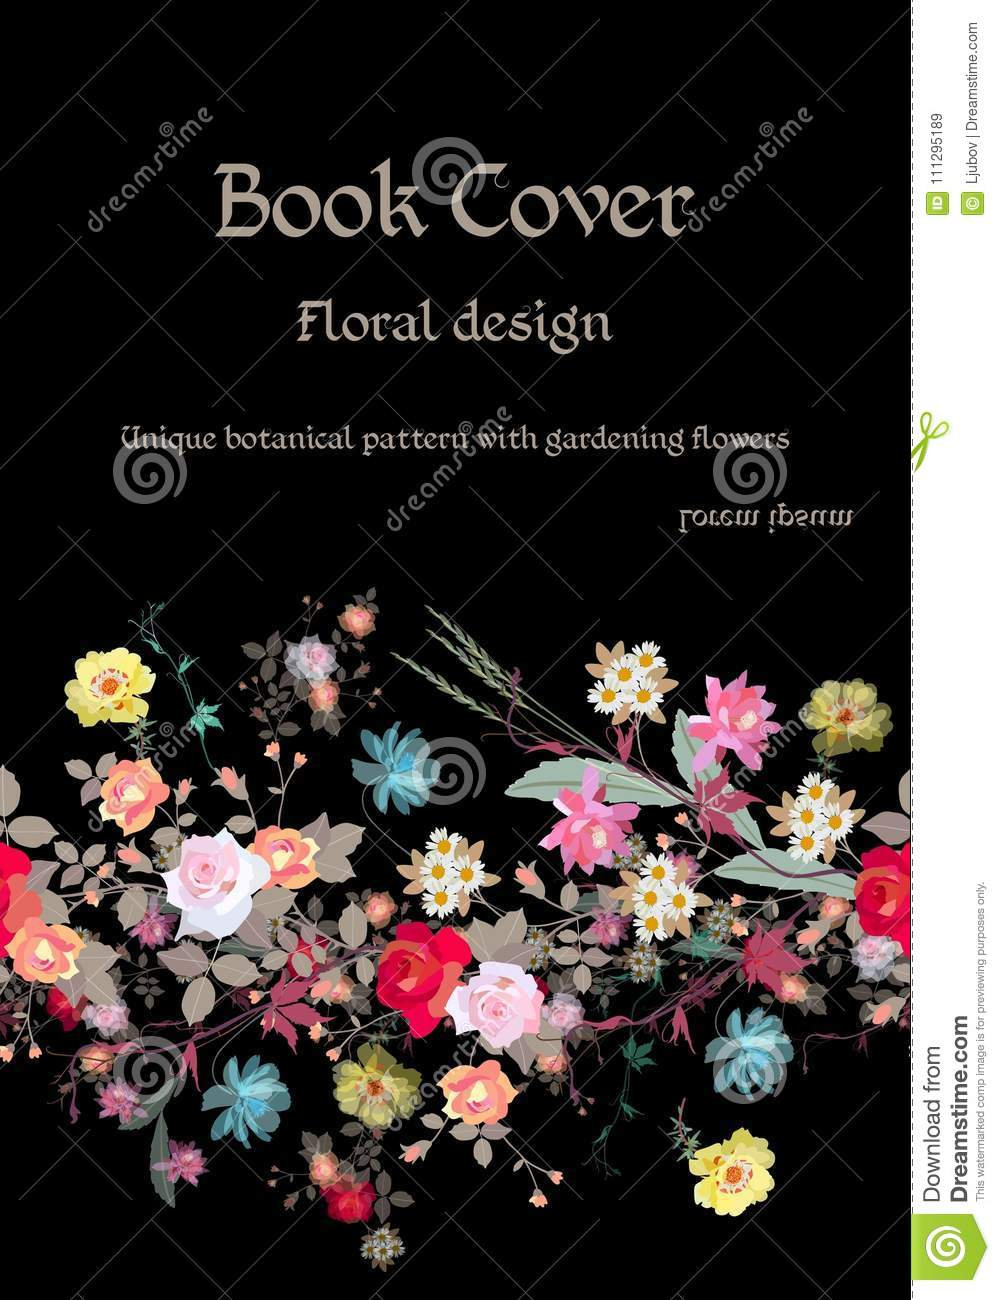 Book cover floral design unique botanical pattern with gardening flowers